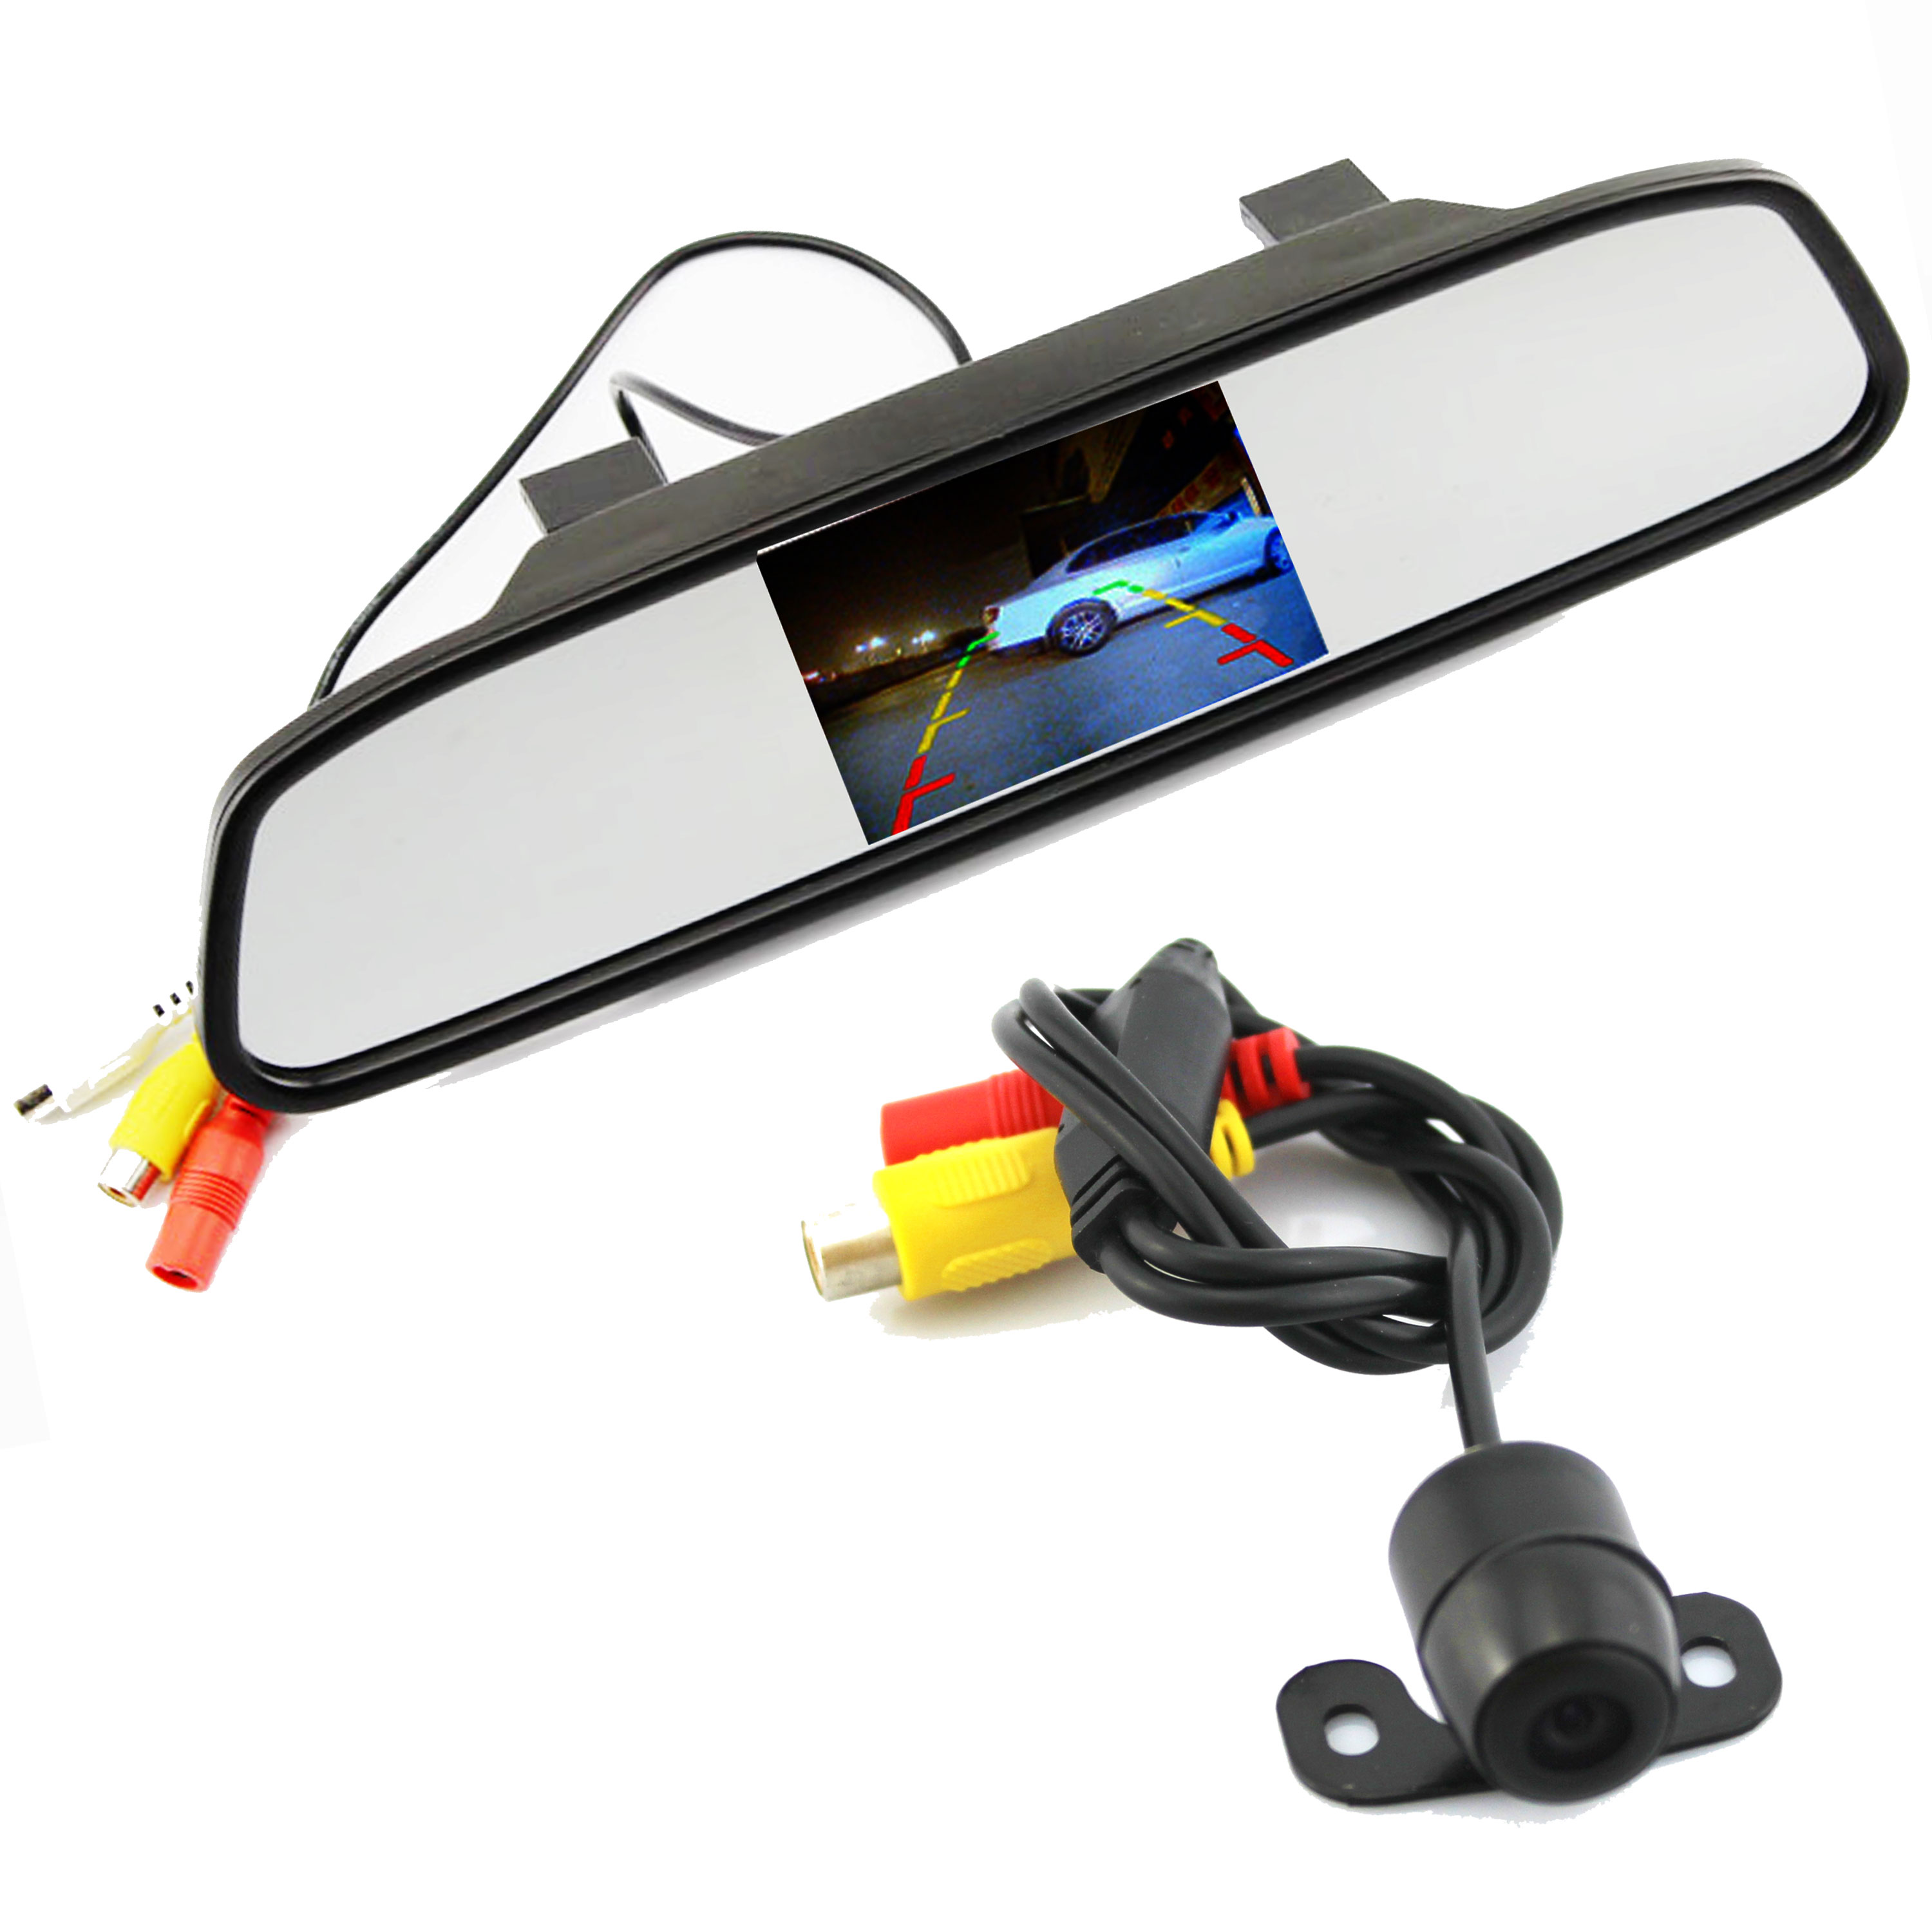 Parking Assistance System 2 in 1 4.3 Digital TFT LCD Mirror Auto Car Parking Monitor + 170 Degrees Mini Car Rear view Camera(China (Mainland))